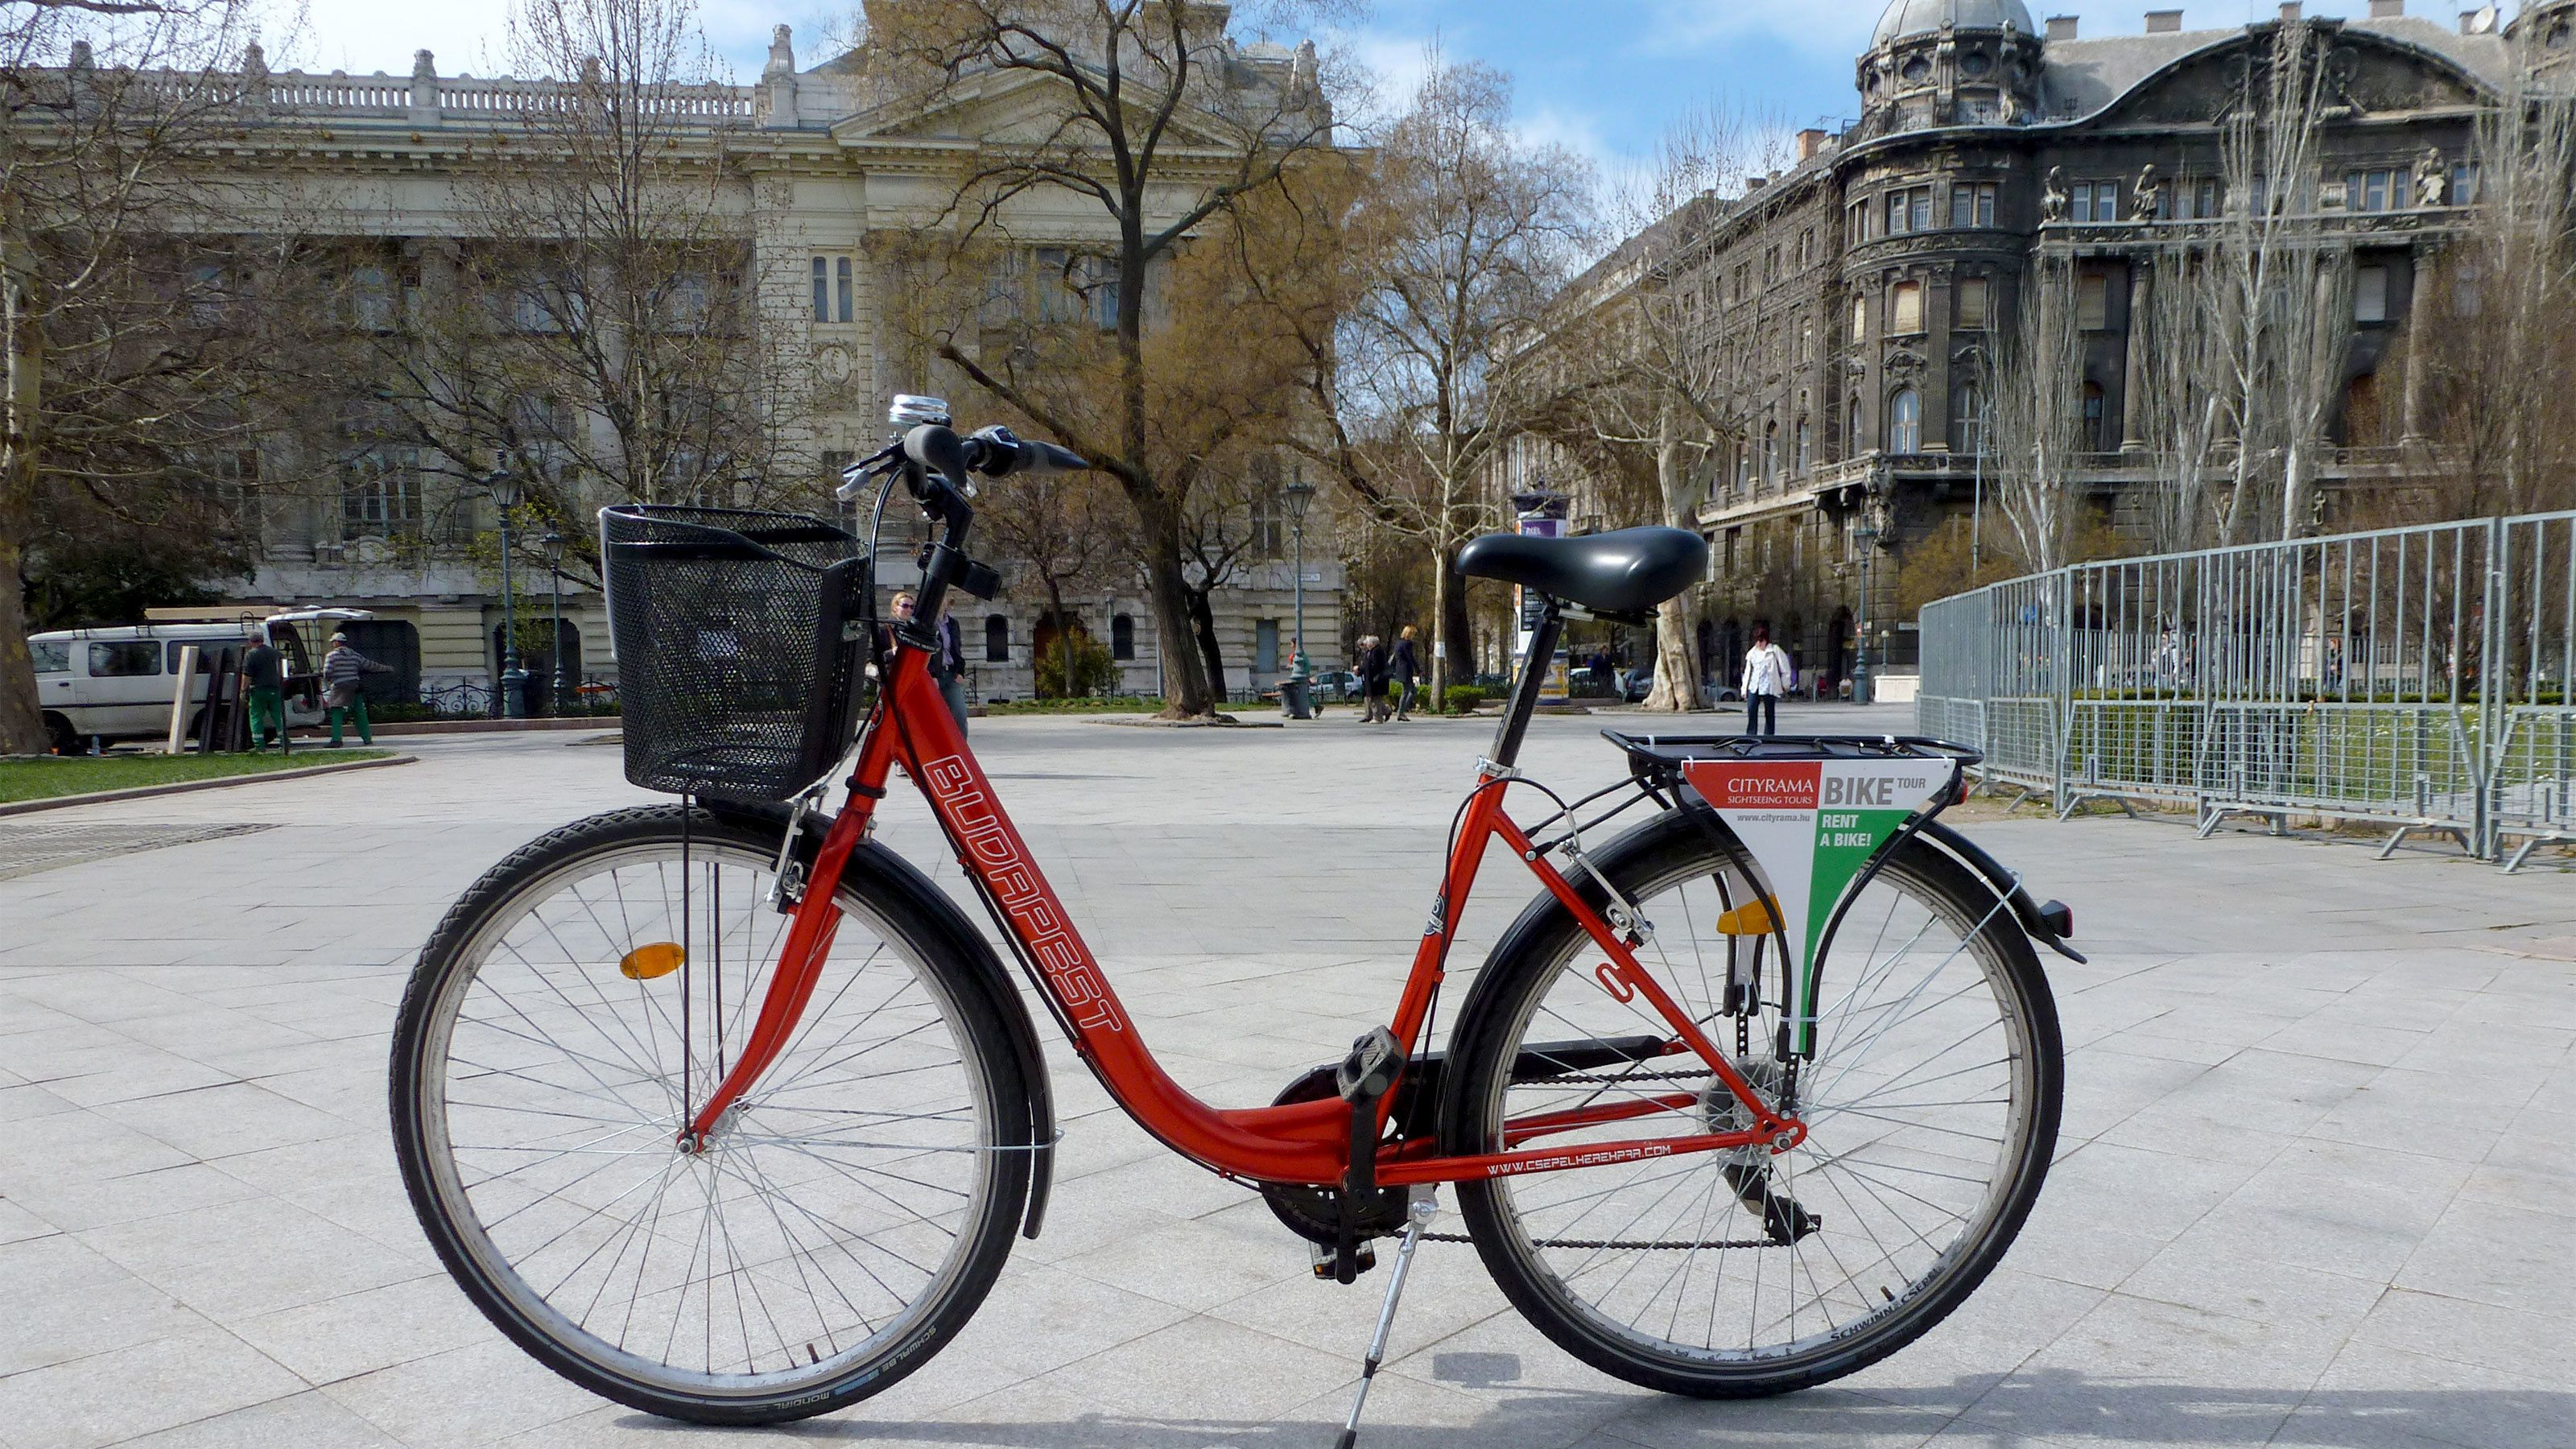 Bike available to rent